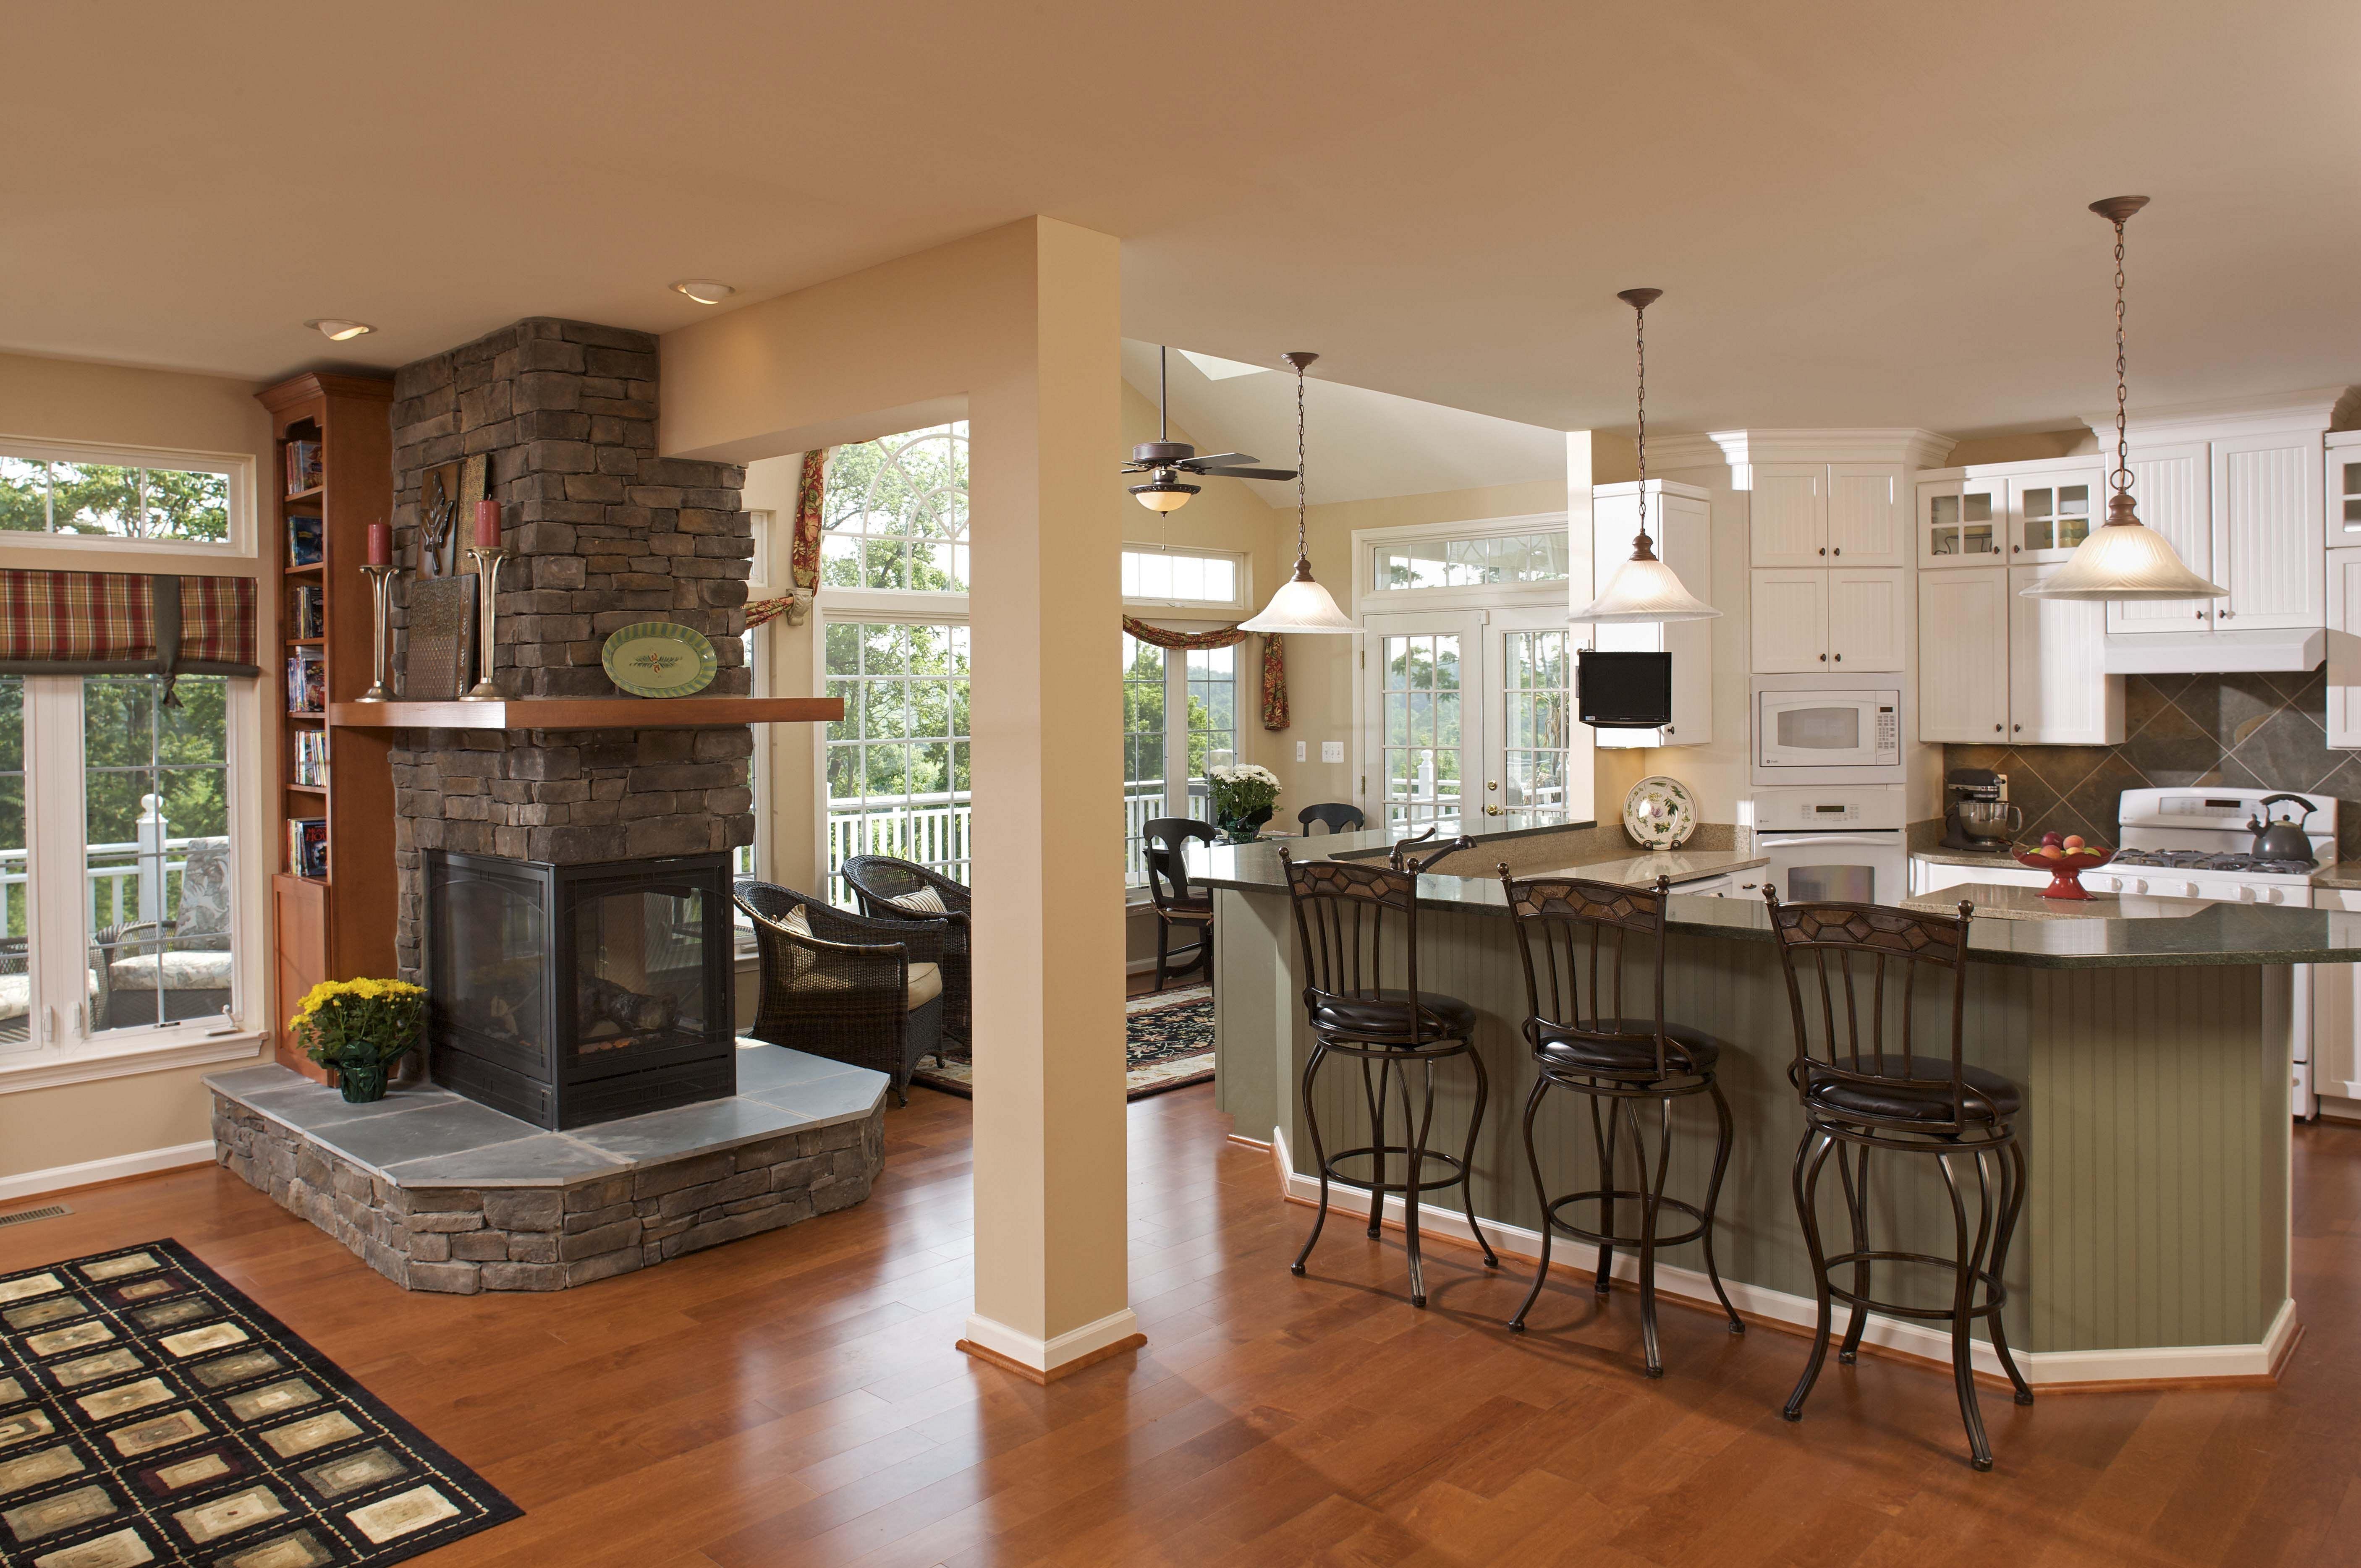 Trending 25 Best House Renovation Ideas On A Budget Mobile Home Renovations Home Remodeling New Home Construction